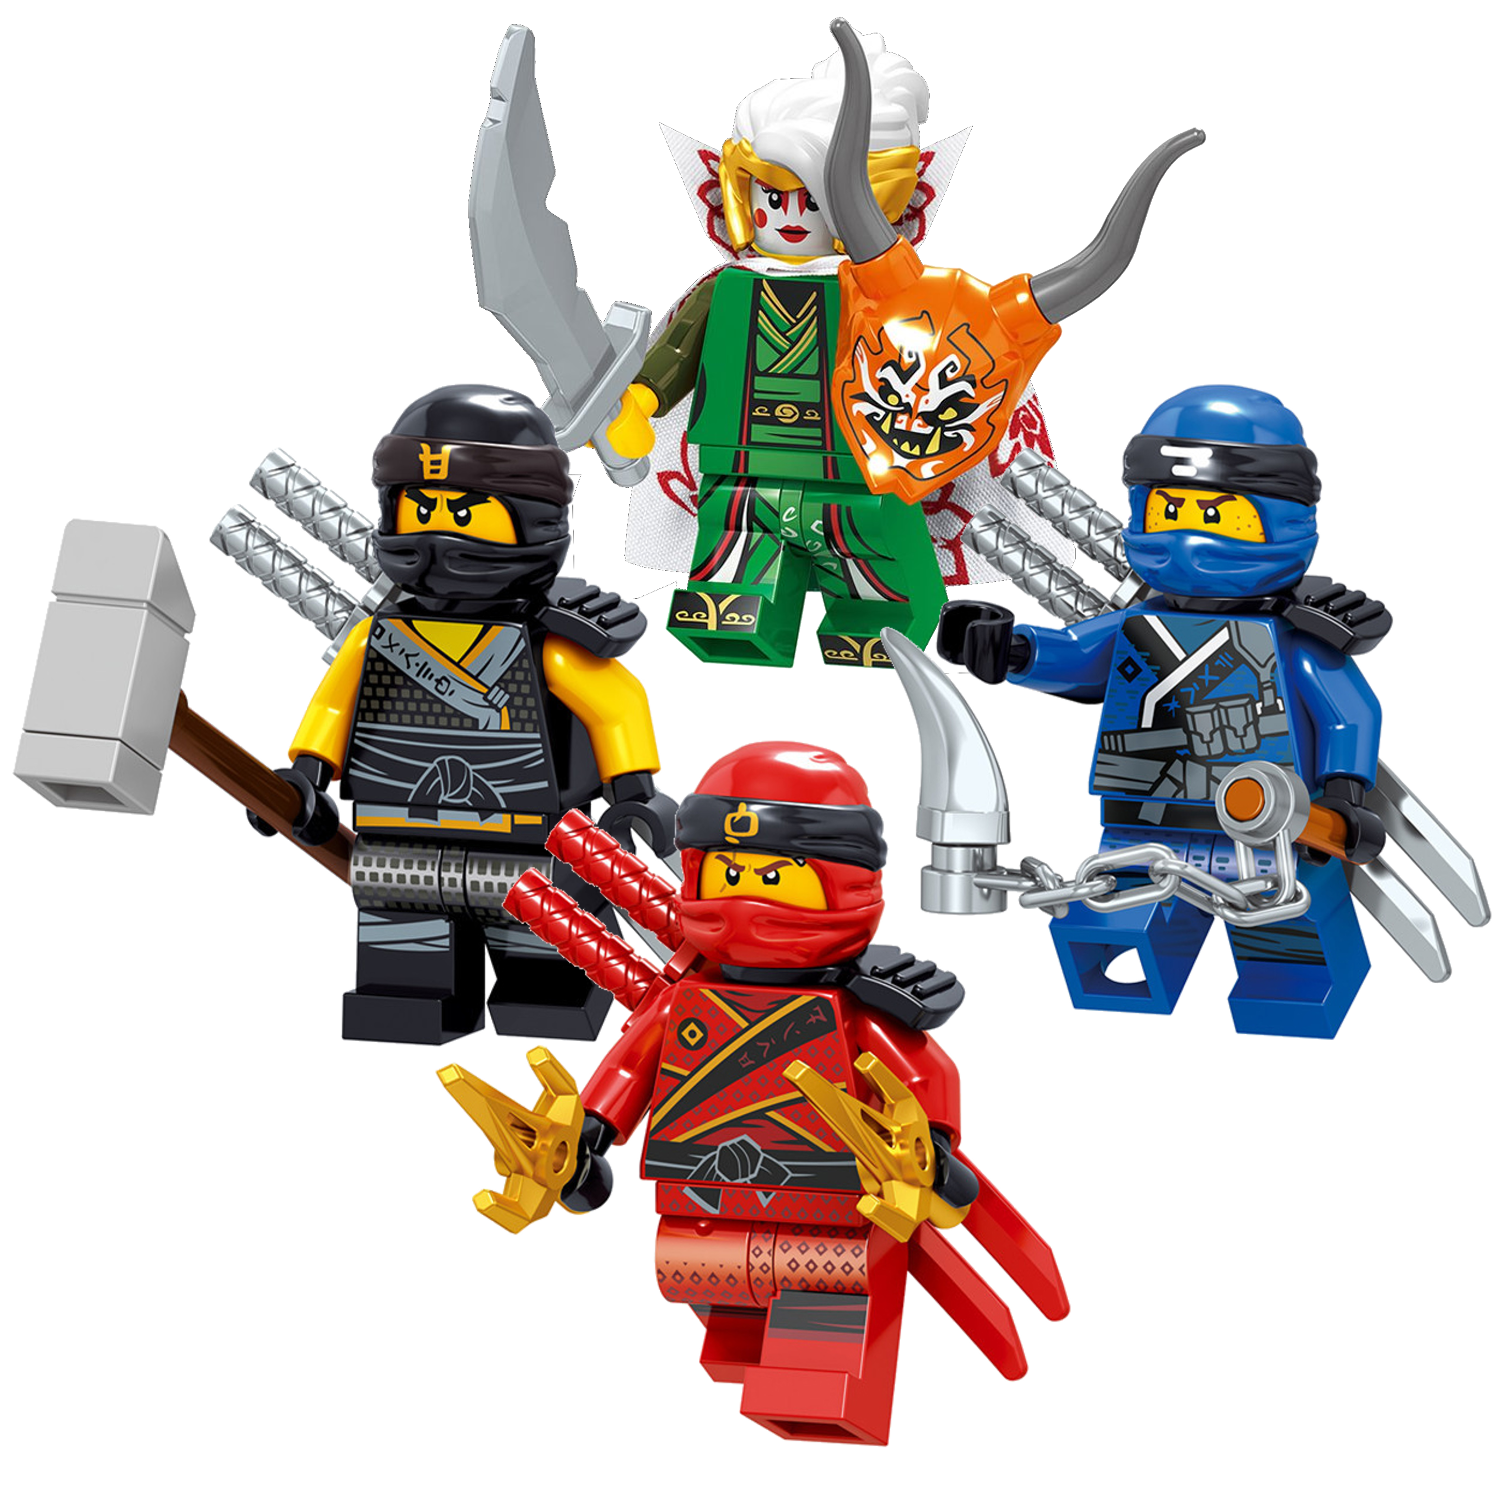 Lego Ninjago Minifigures Golden Lloyd Zane Cole Nya Kai Jay And Wu